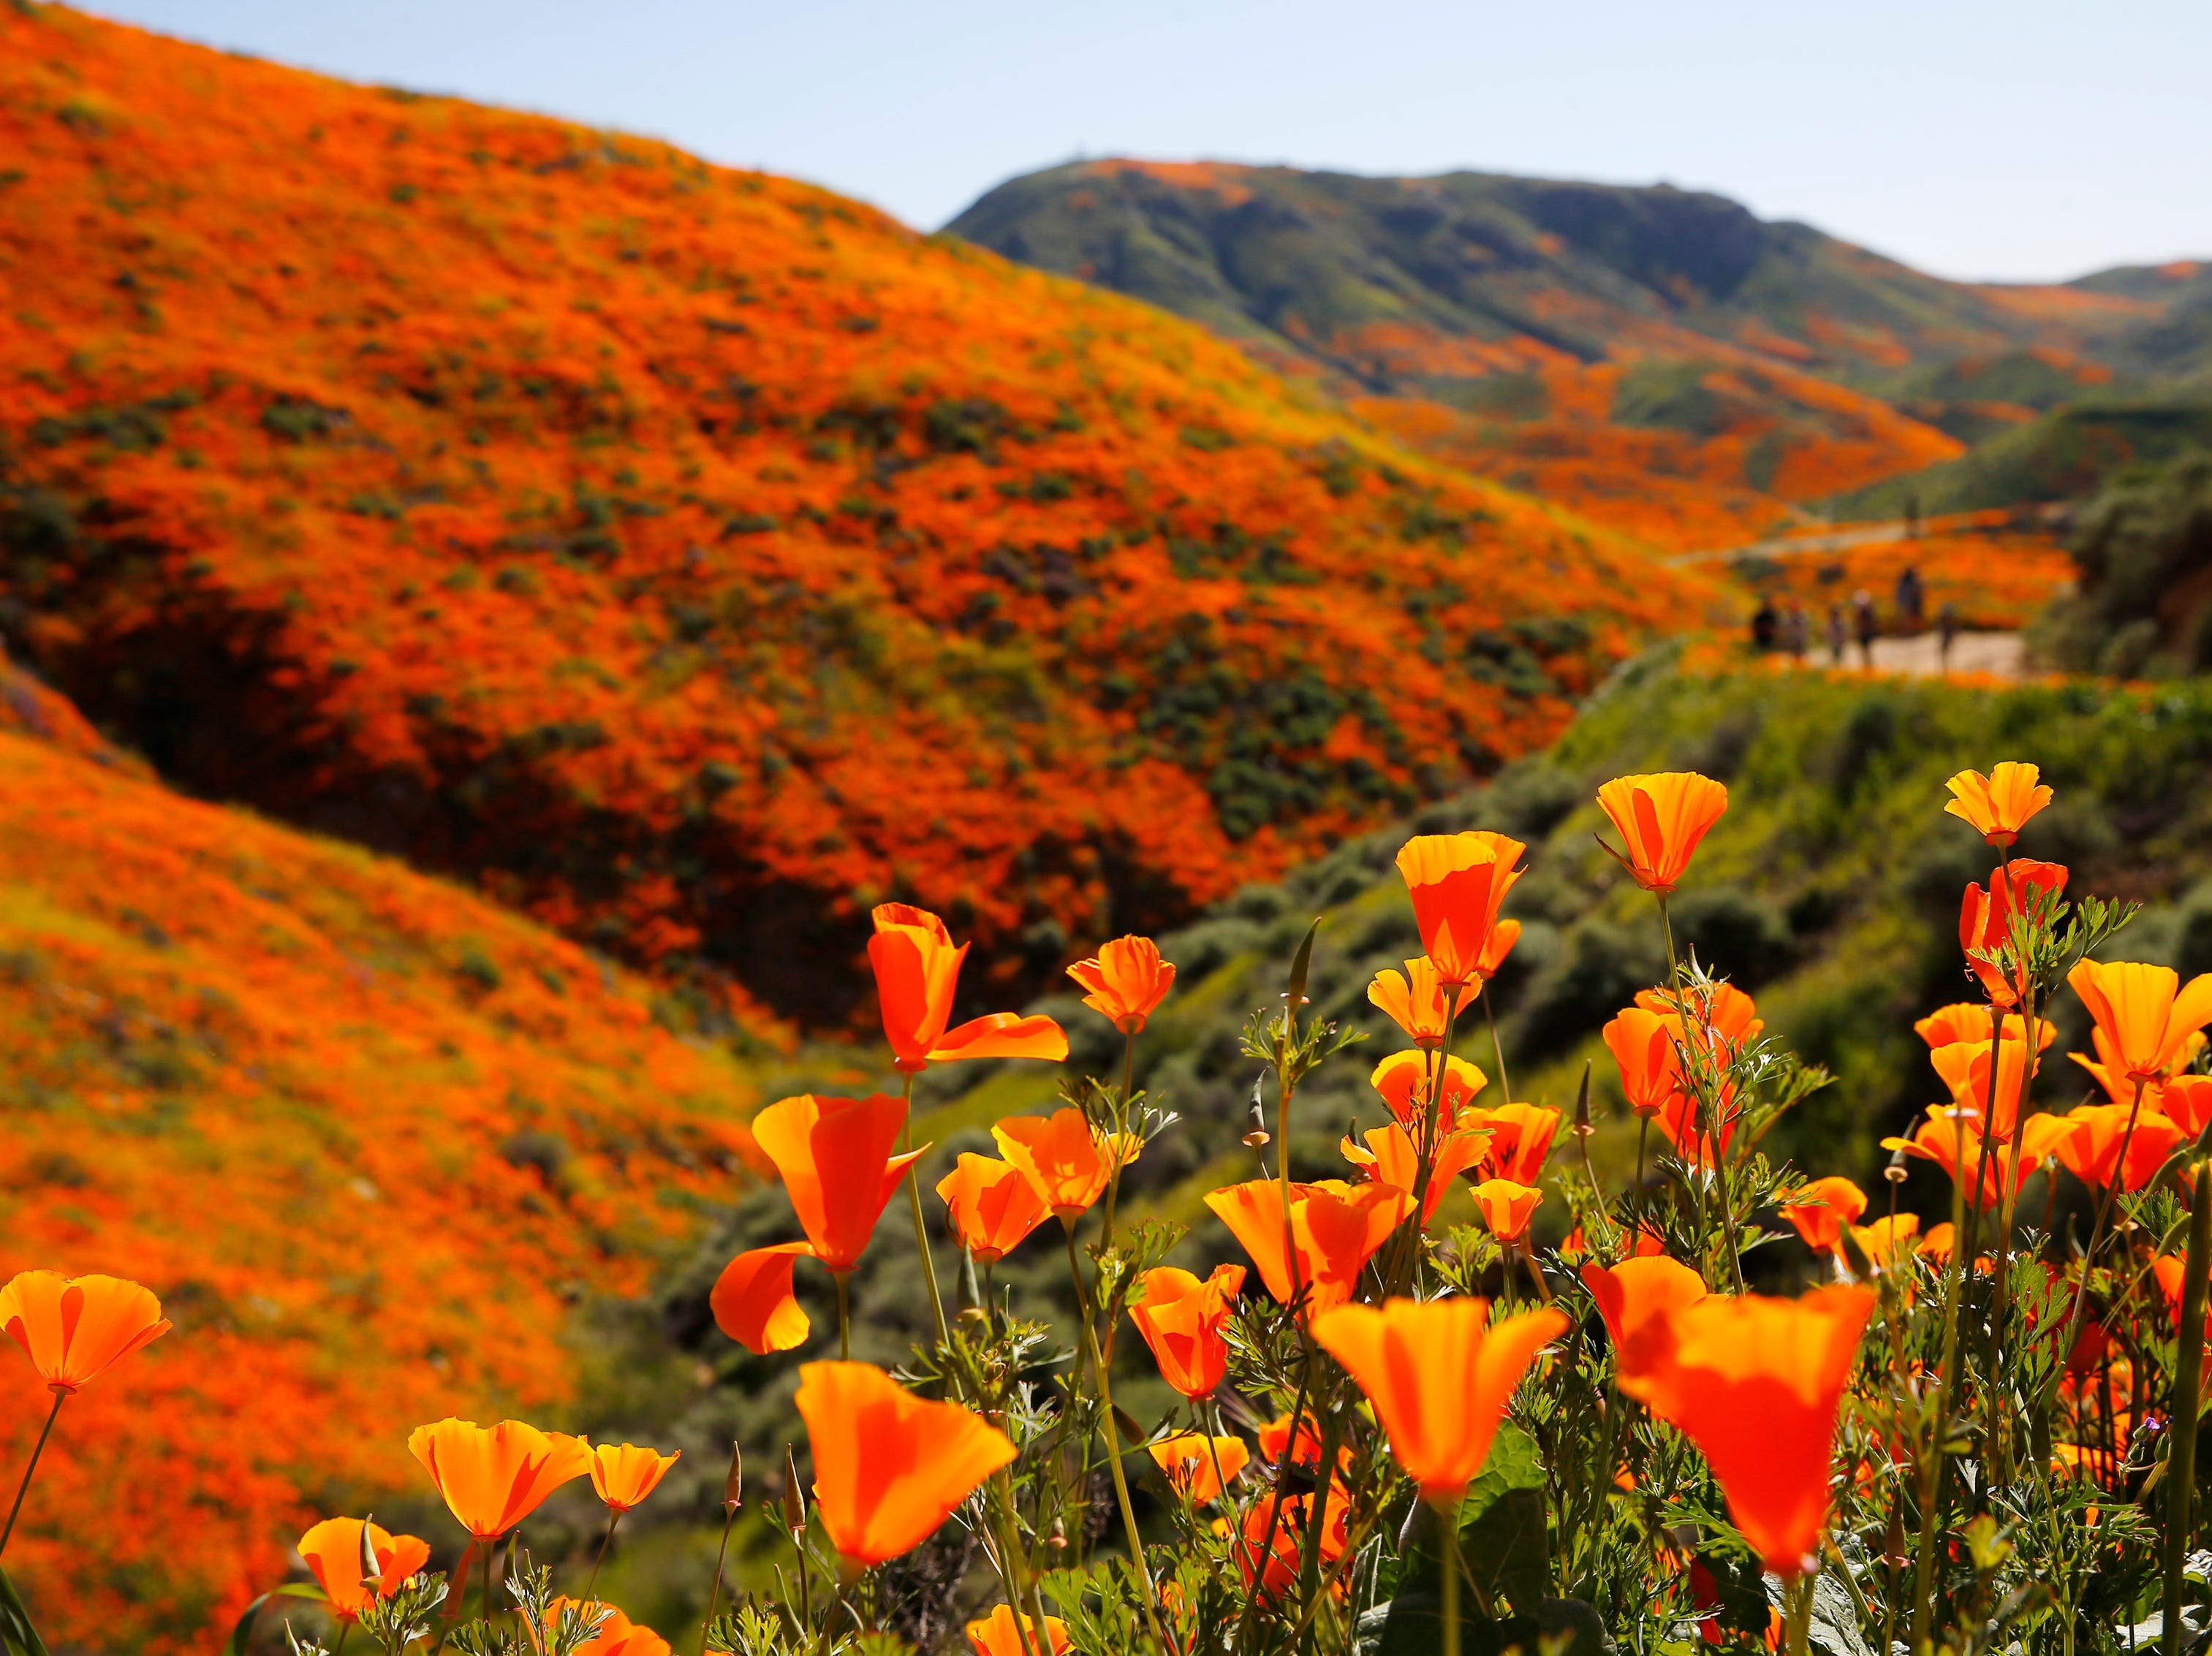 Poppies color a hillside at Walker Canyon in Lake Elsinore, Calif. Sunday March 17, 2019. After massive crowds flooded the small community to see the flowers, city officials have shut down Walker Canyon to the public. No shuttles or visitors will be allowed.